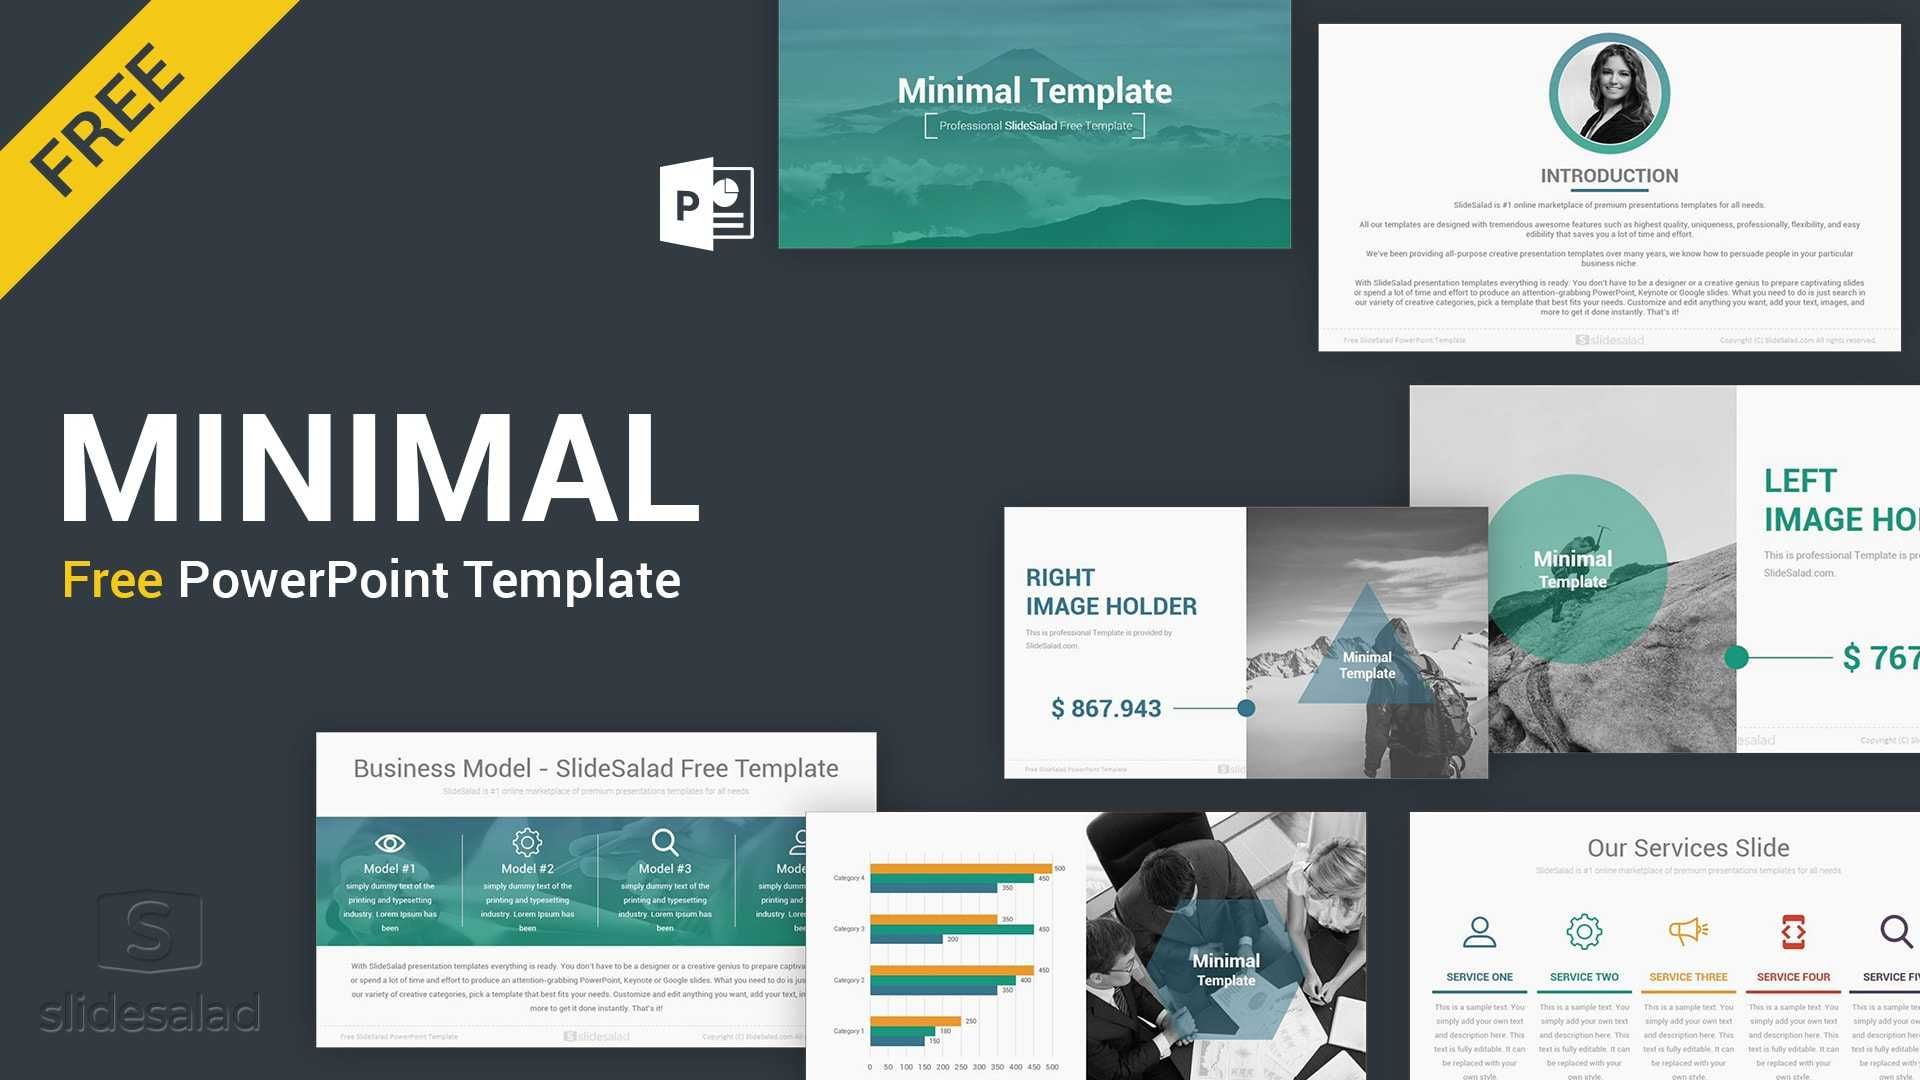 Best Free Presentation Templates Professional Designs 2019 in Powerpoint Photo Slideshow Template